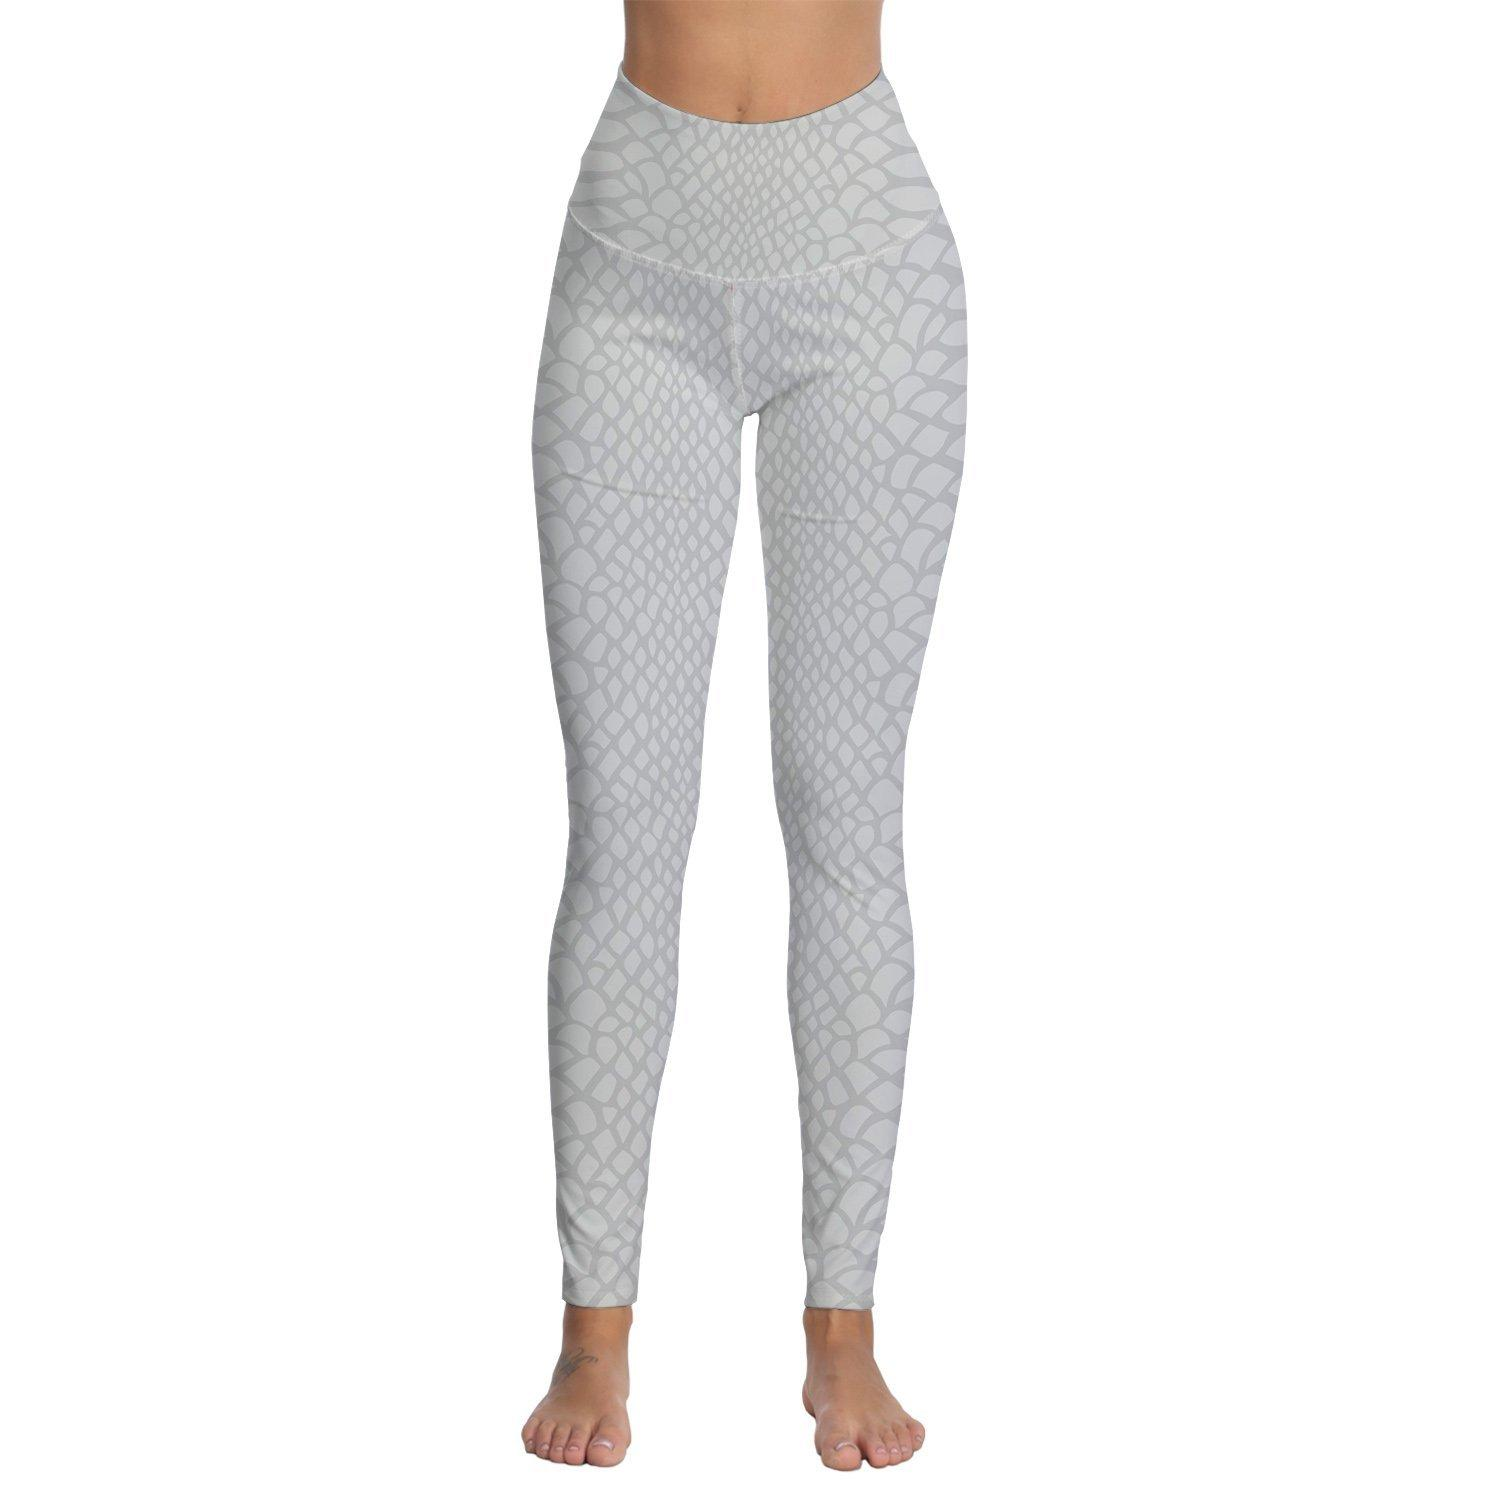 5946855db082d 2019 Womens Digital Texture Printed High Waist Leggings Skinny Workout  Tummy Control Yoga Pants From Marchnice, $31.69 | DHgate.Com